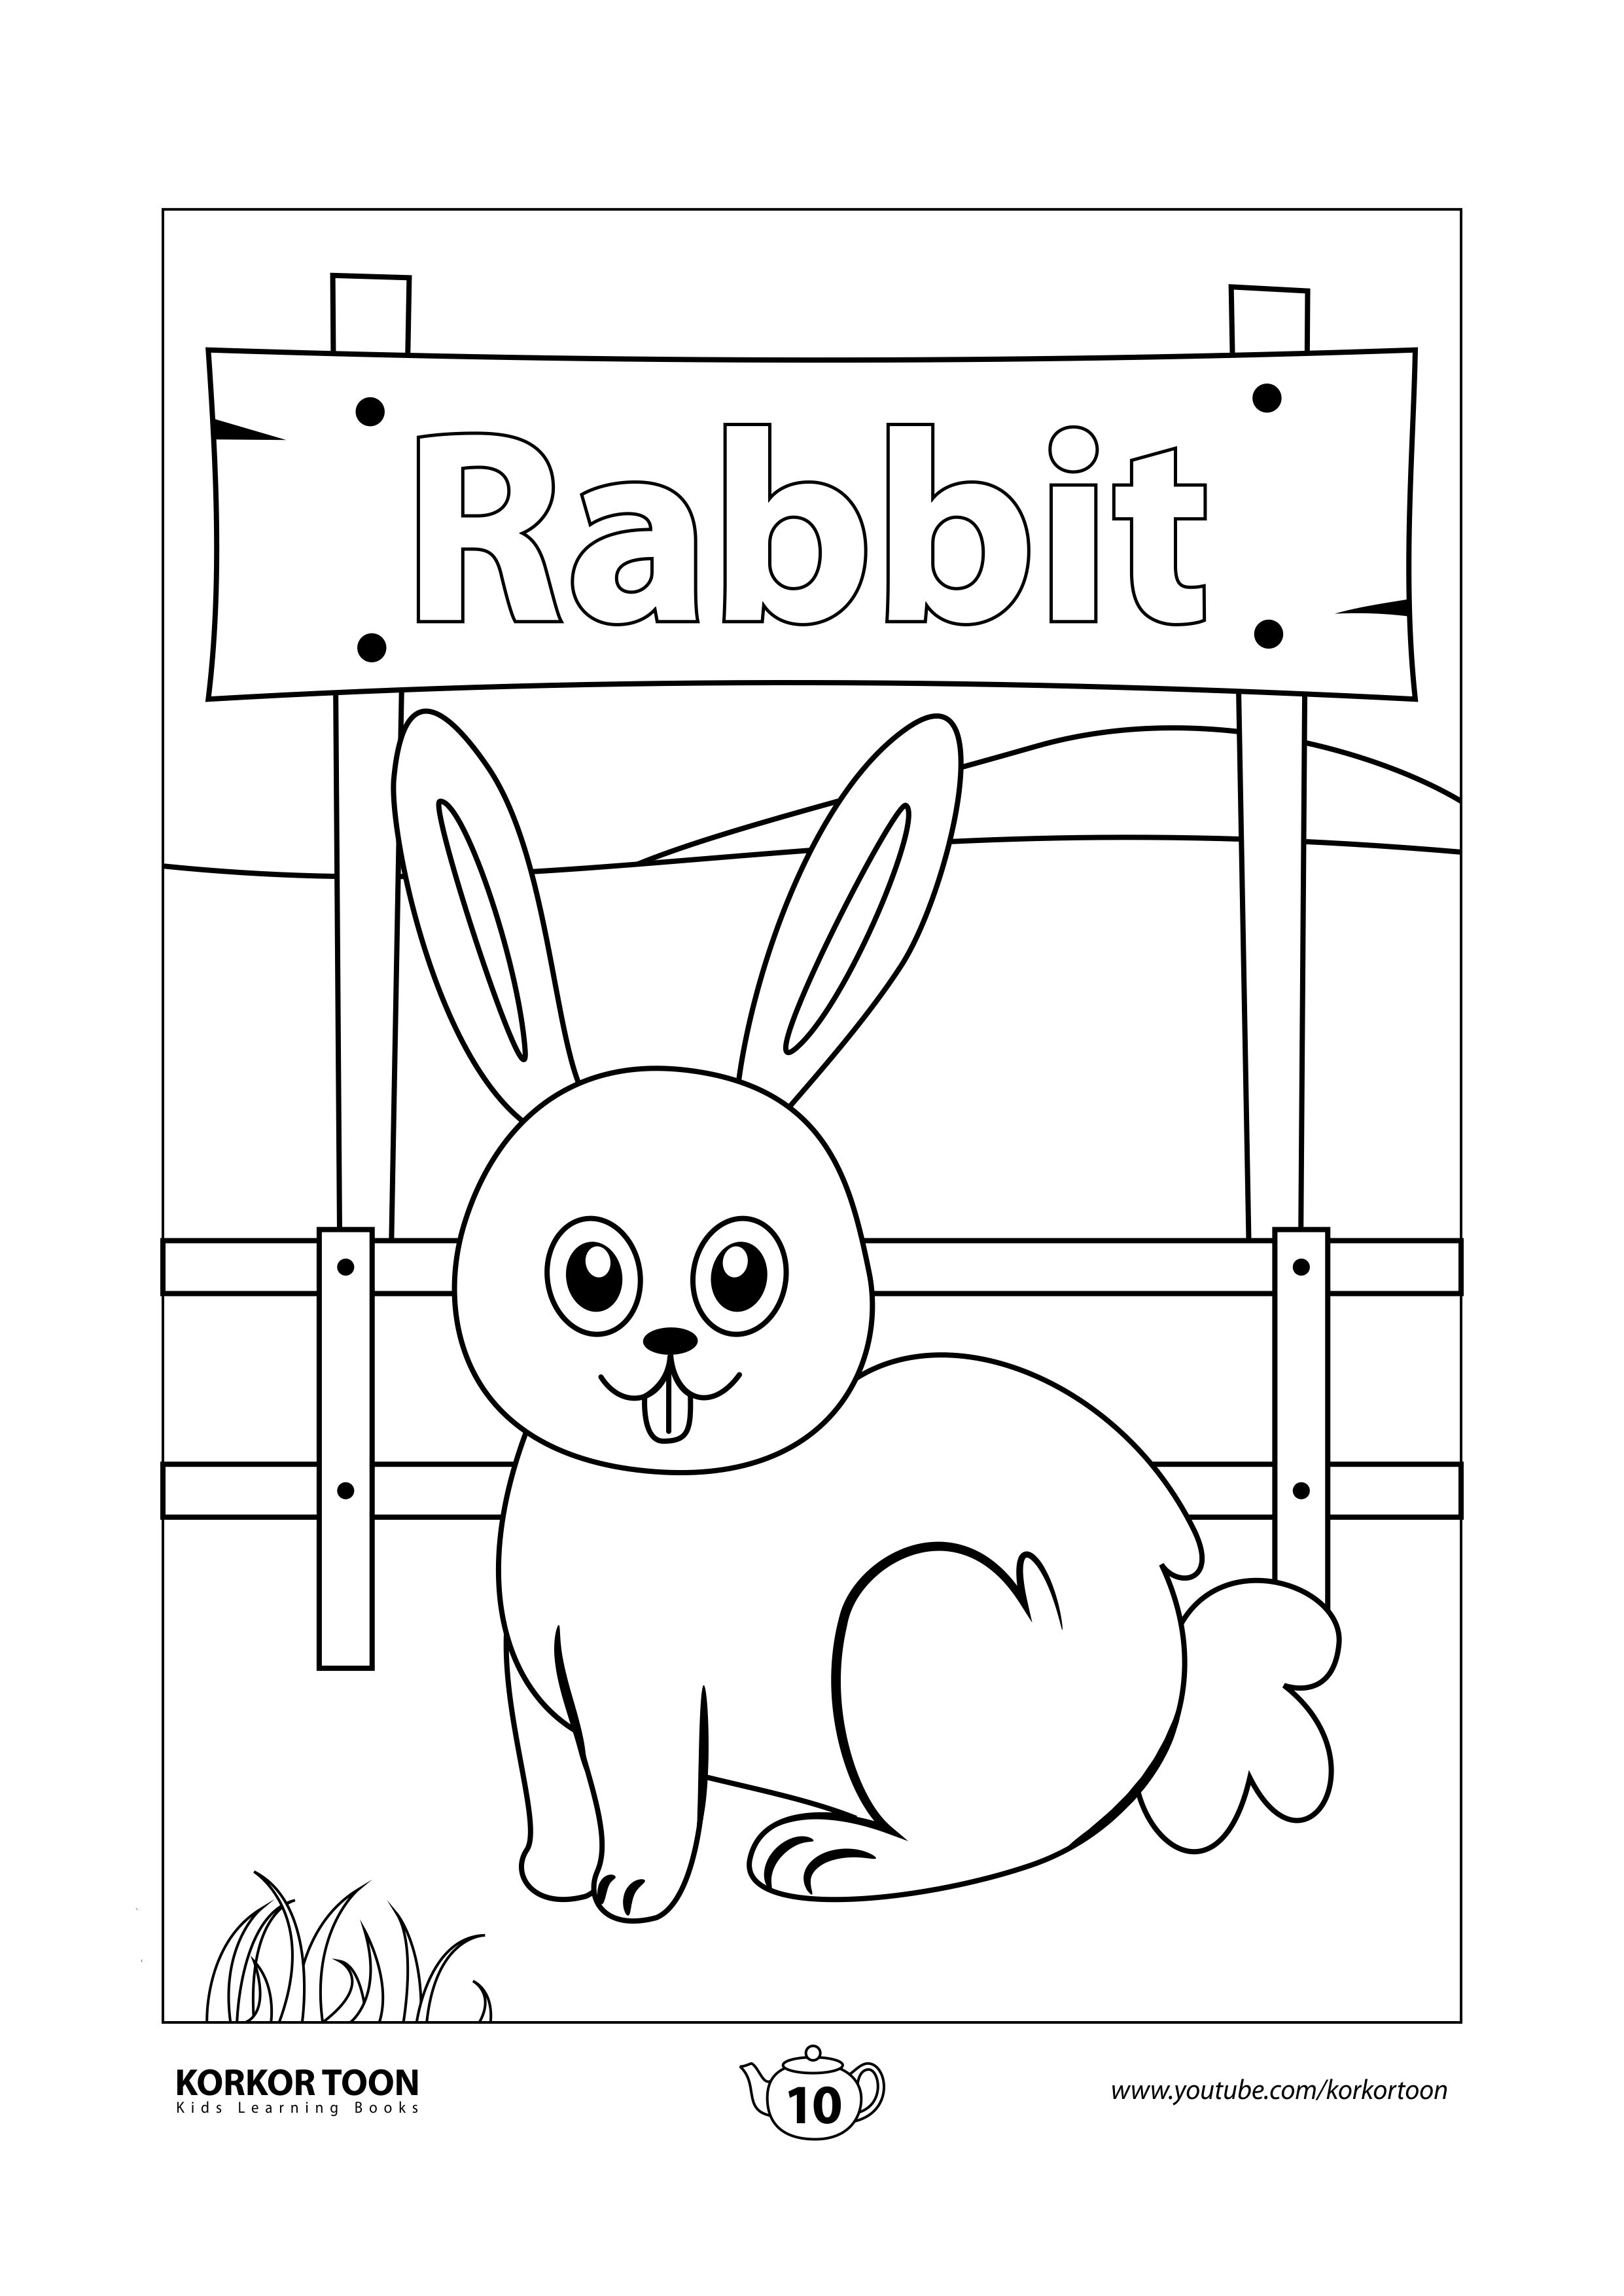 Rabbit Coloring Page Farm Animals Coloring Book Animal Coloring Books Coloring Books Kids Coloring Books